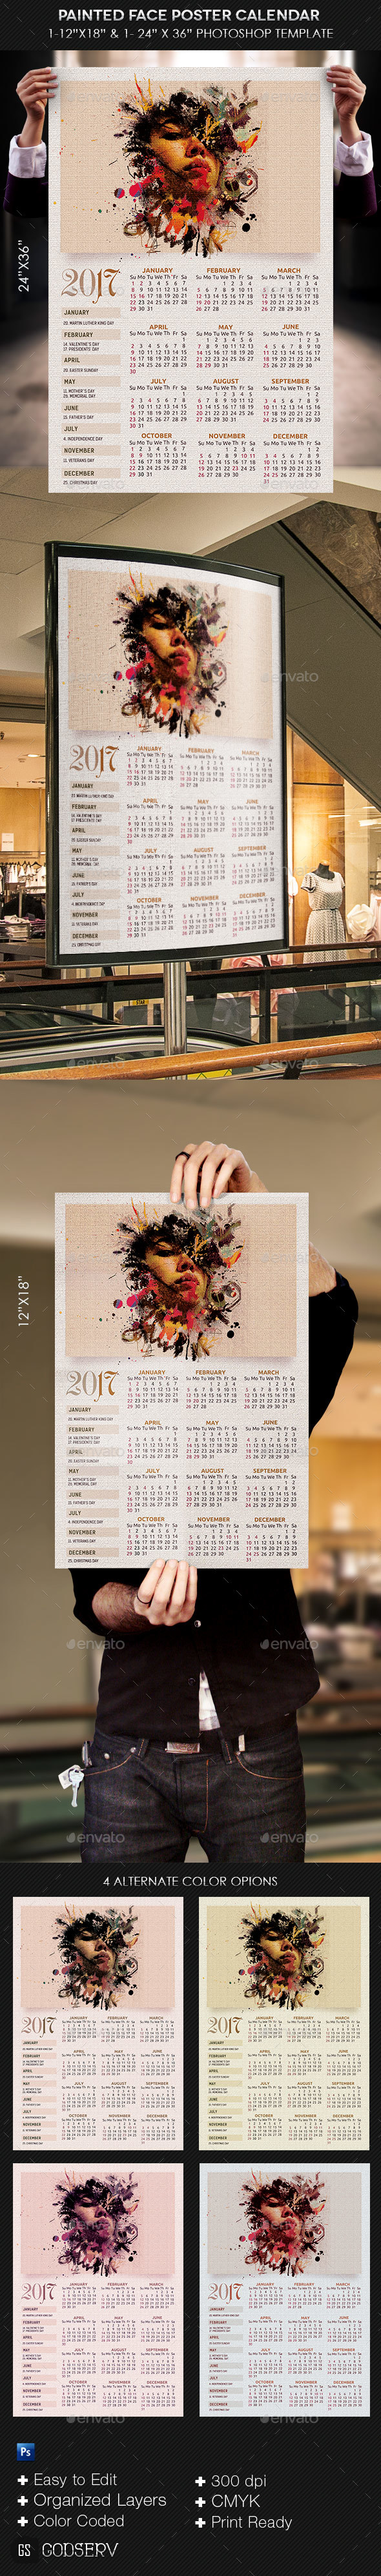 Painted Face Poster Calendar Template - Calendars Stationery